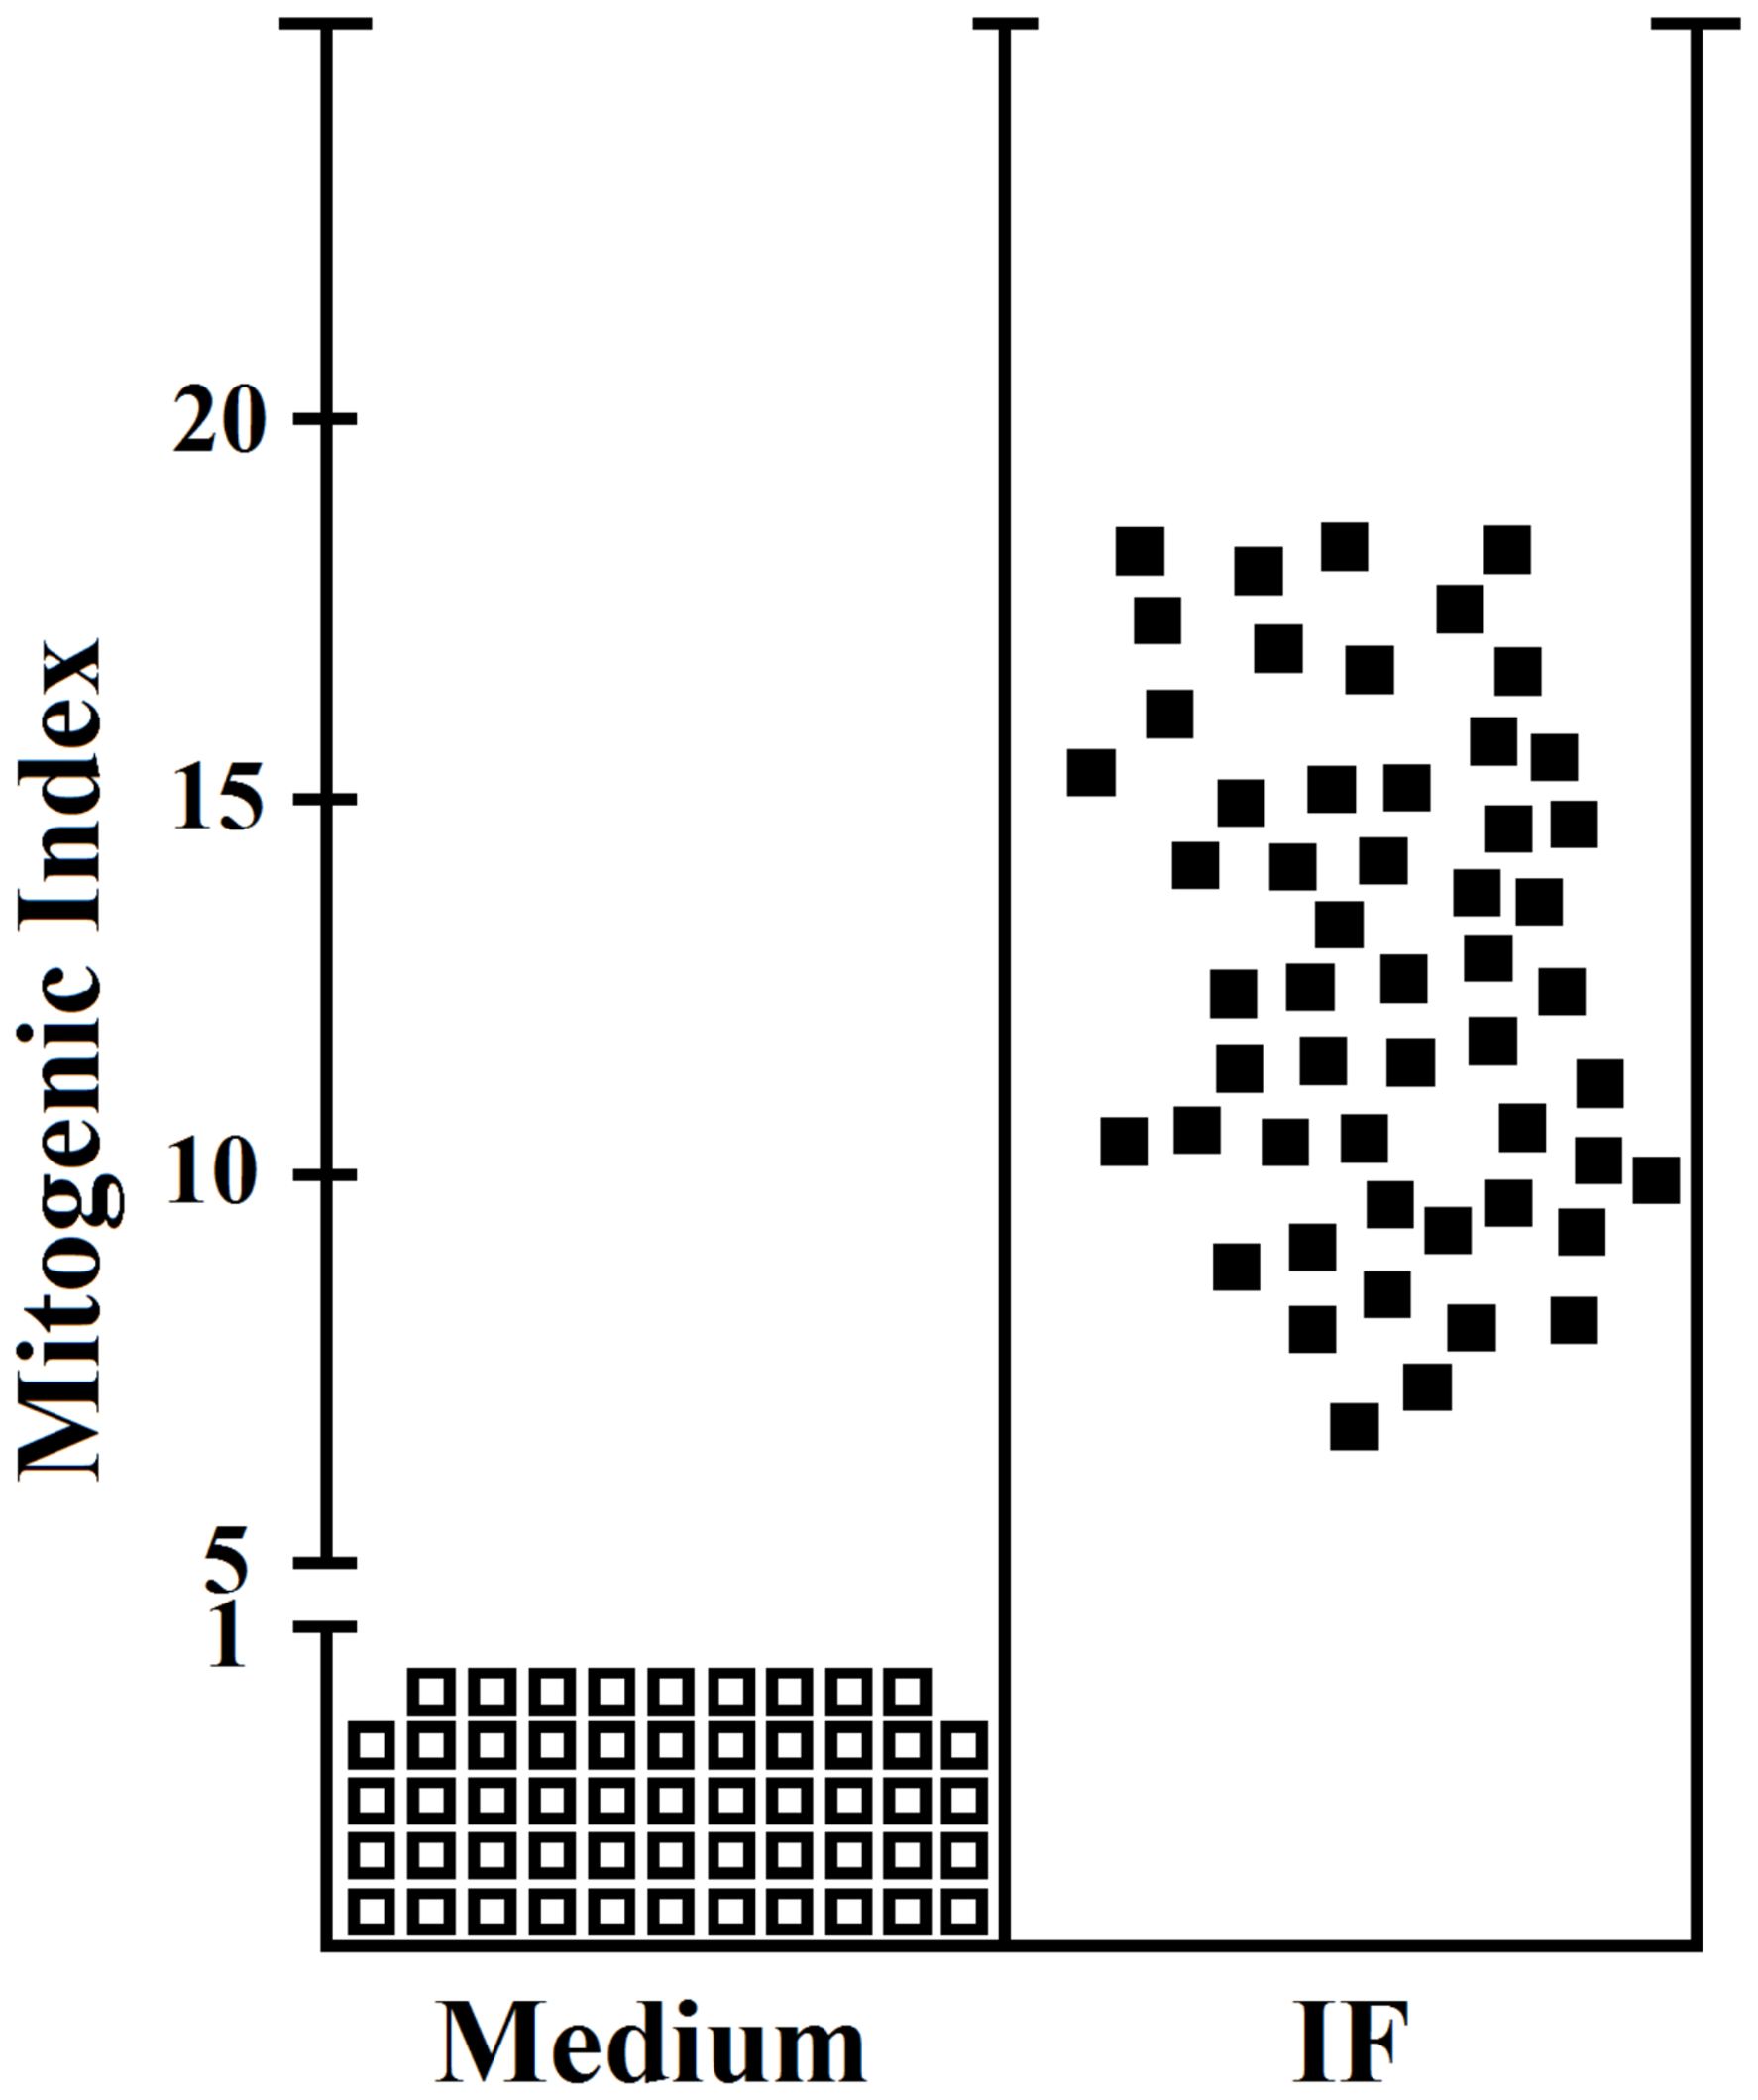 Proliferative response to IF of the IF-specific gastric CD4+ T cell clones obtained from PA patients.